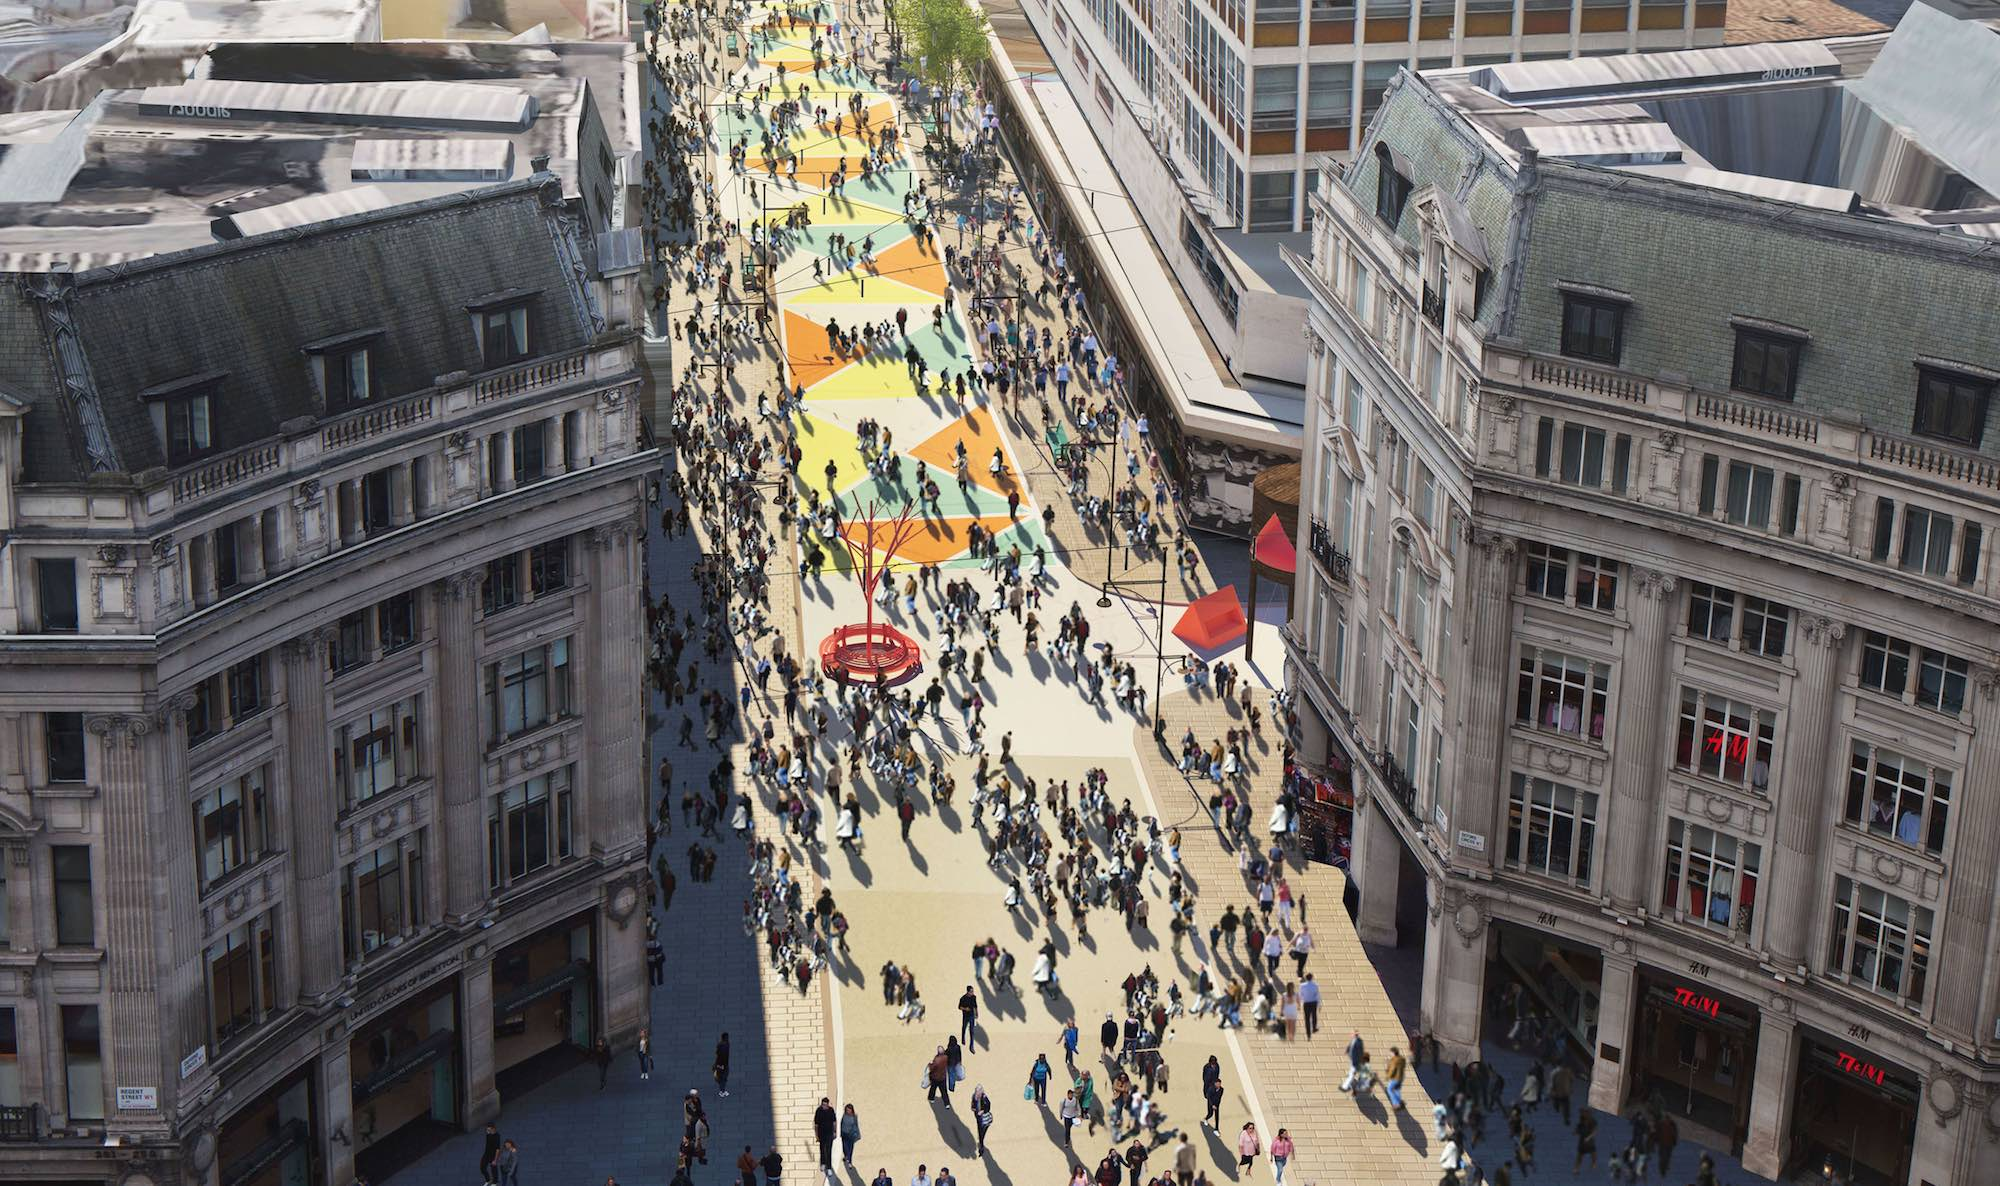 London mayor plans to pedestrianise Oxford Street